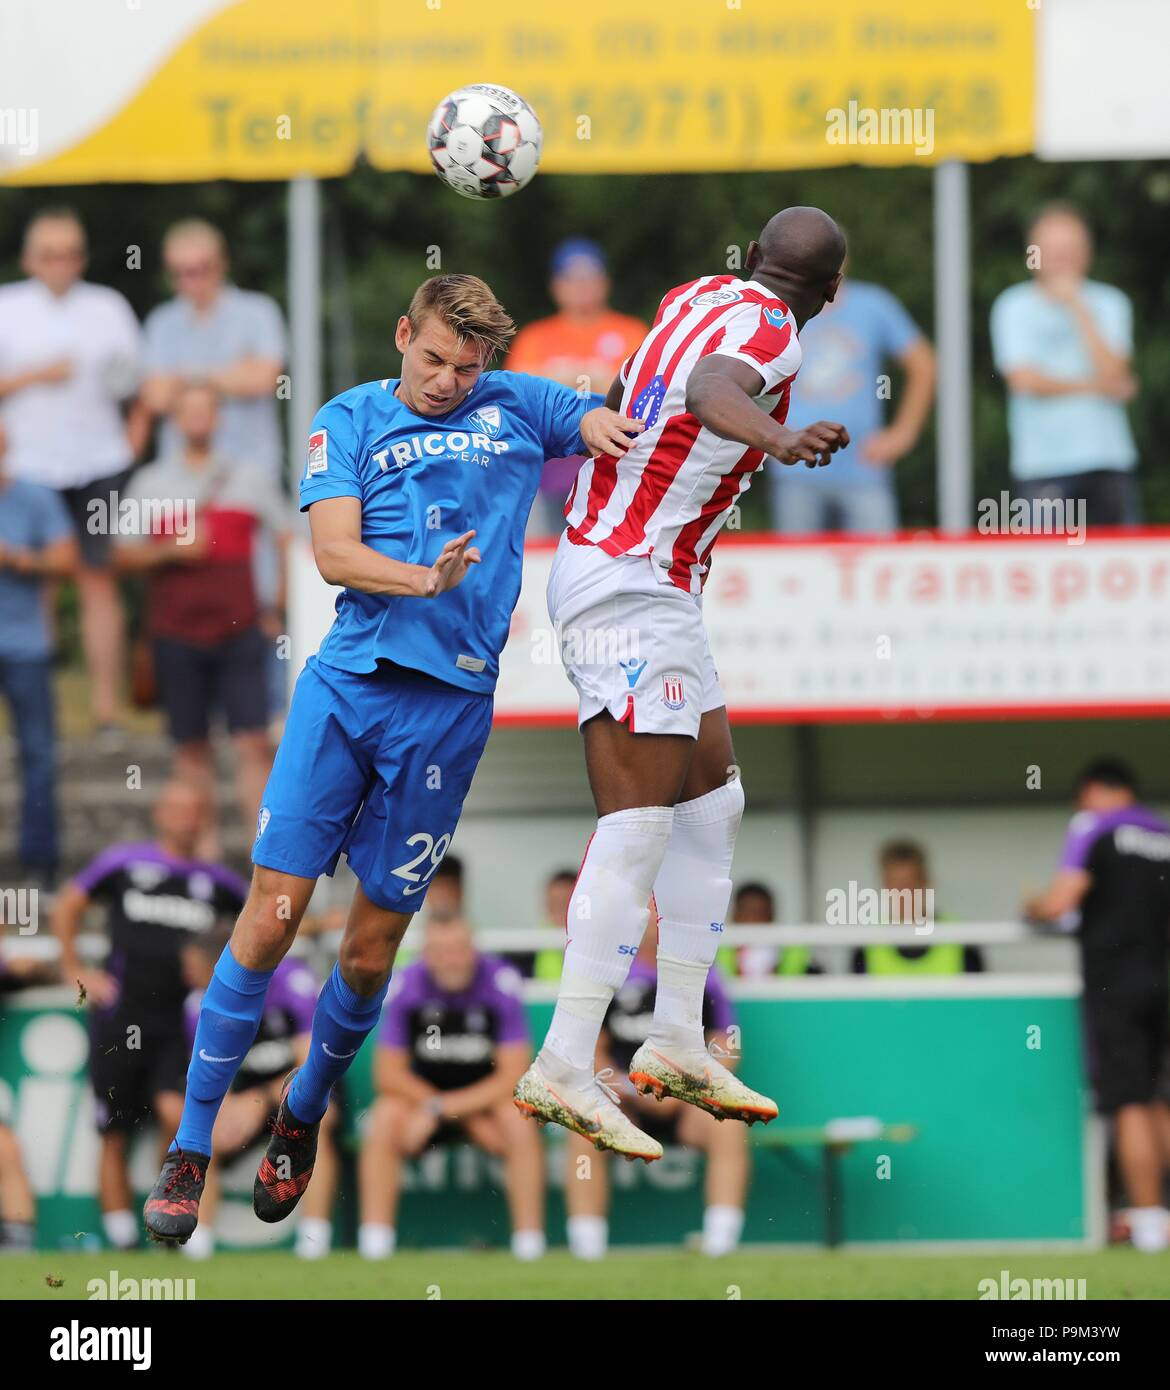 firo: 18.07.2018, football, 2.Bundesliga, season 2018/2019, VfL Bochum - Stoke City in Rheine Maxim LEITSCH | usage worldwide - Stock Image